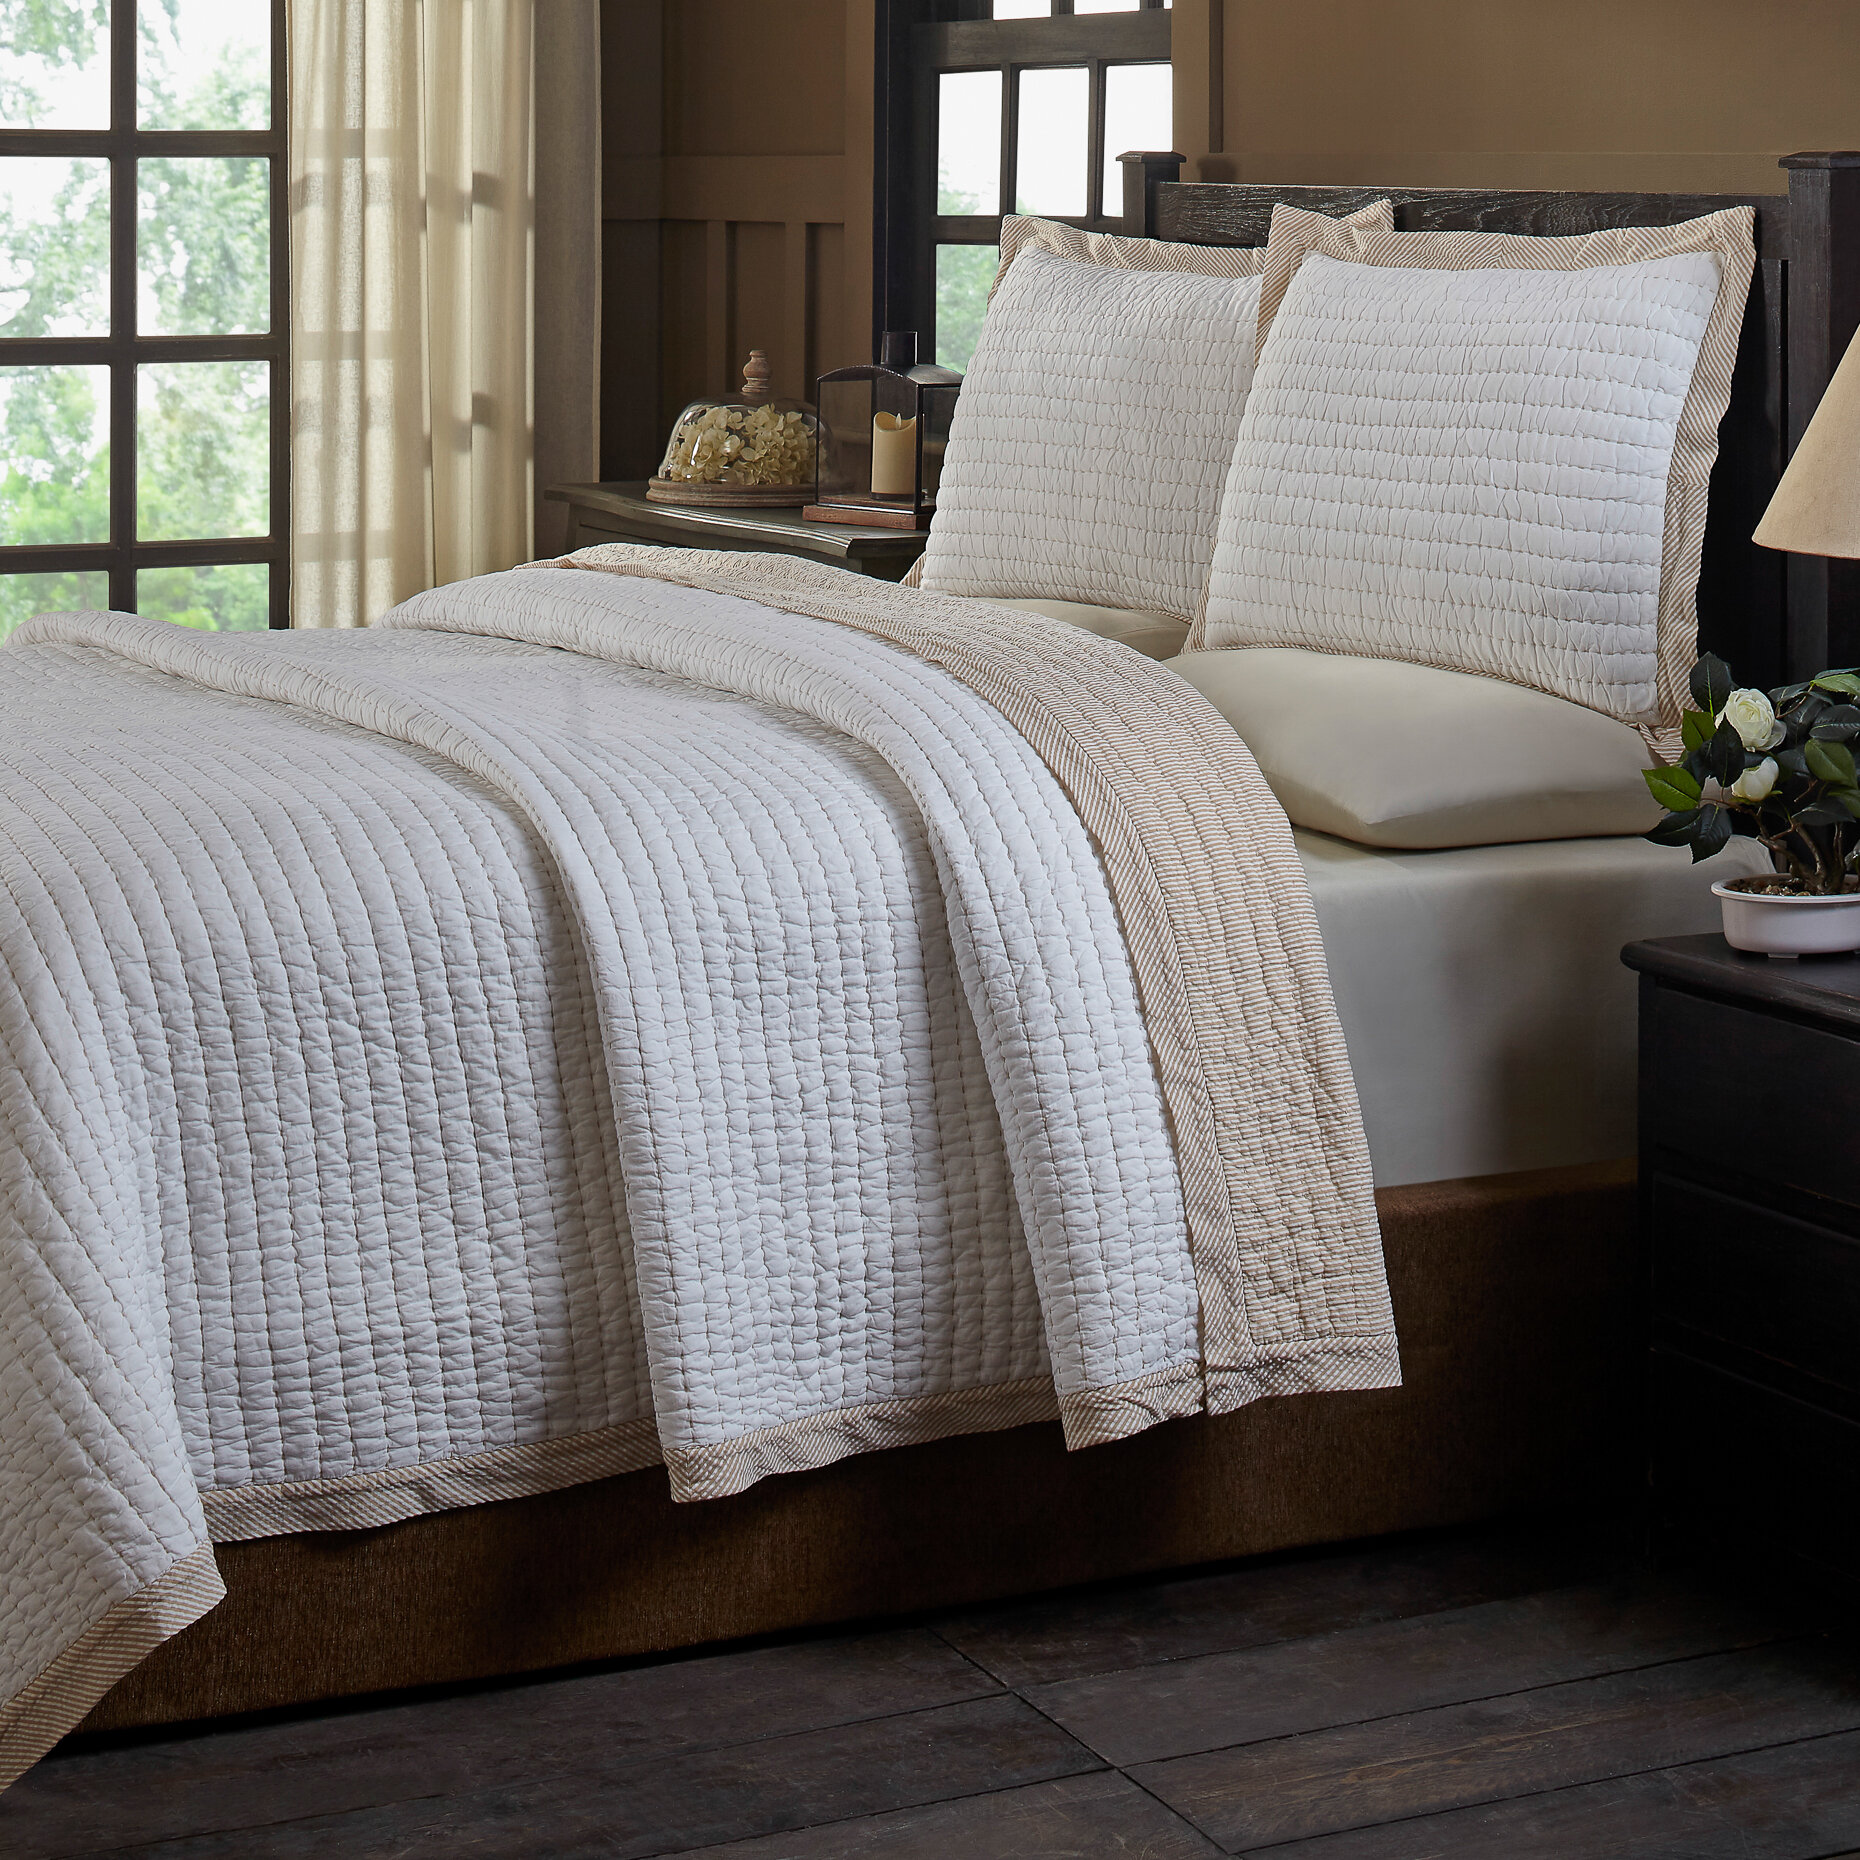 Quilt Coverlet Amity Home Quilts Coverlets Sets You Ll Love In 2021 Wayfair